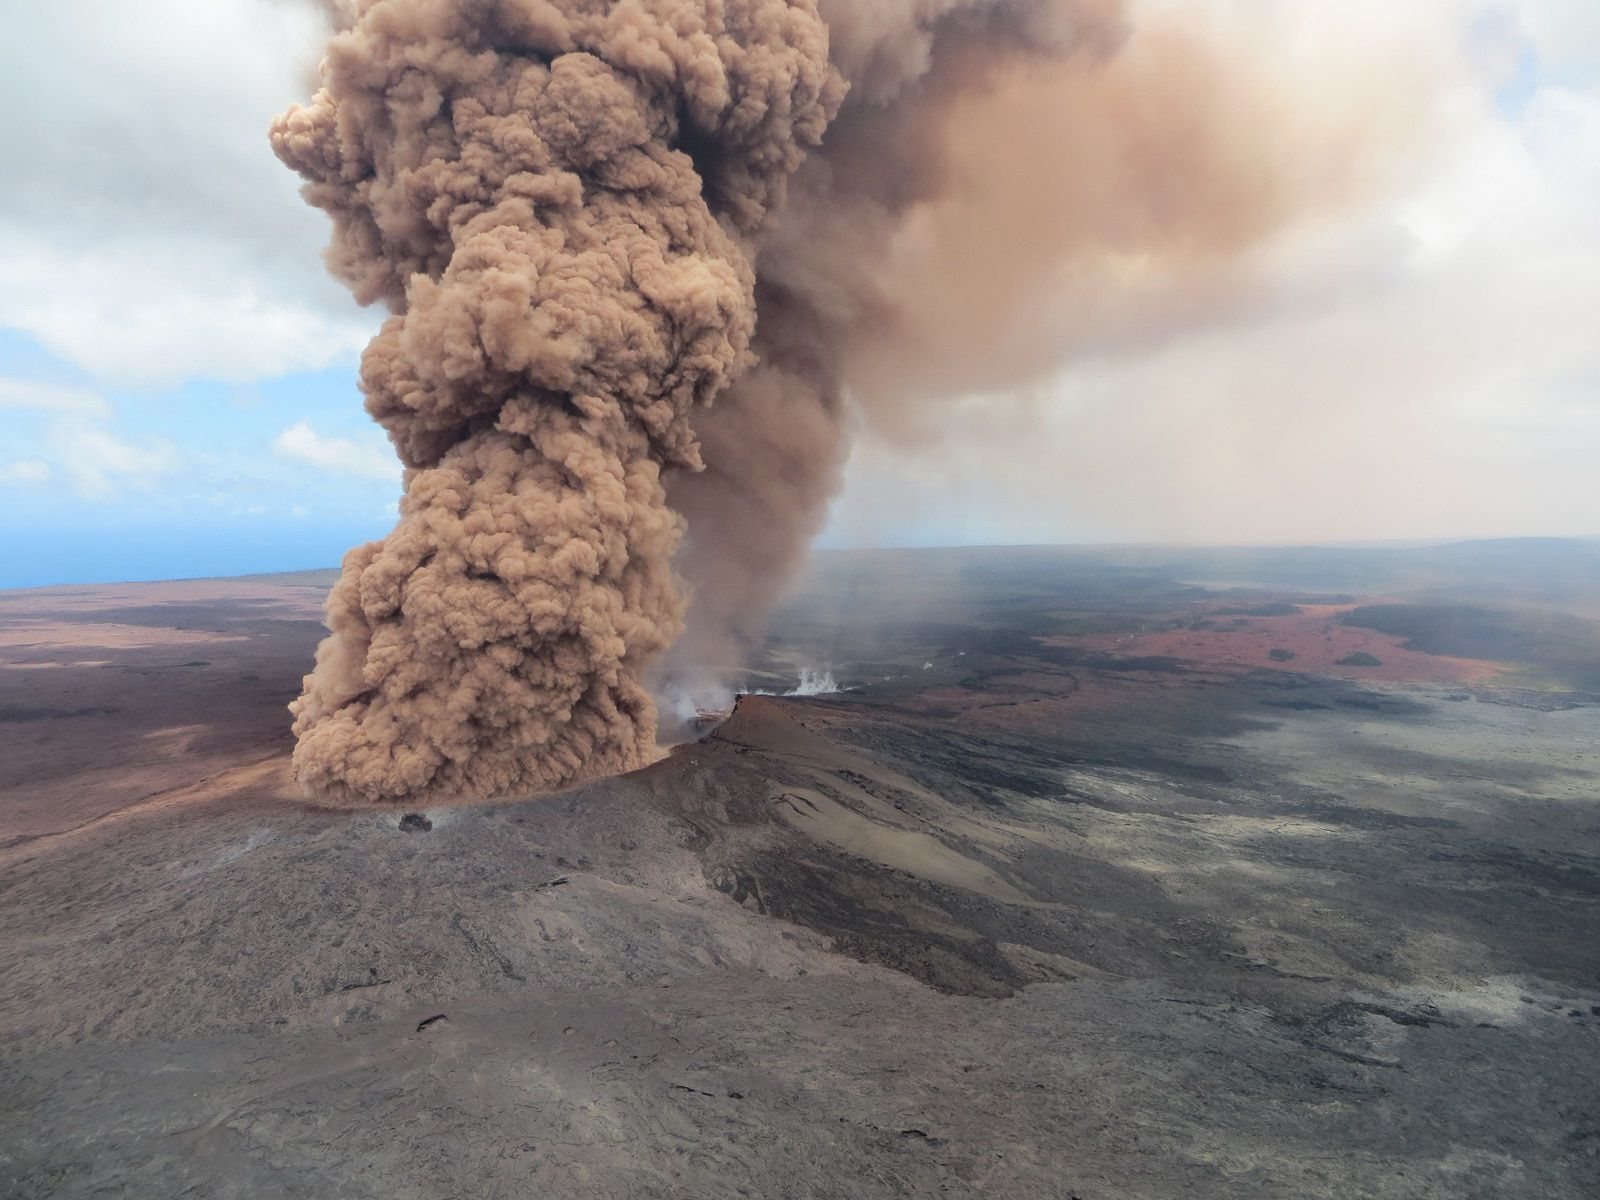 Kilauea Pu'u O'o - 04.05.2018 / 12:46 HST - plume of old materials remobilized after earthquake of M 6.9 - Photo HVO - USGS